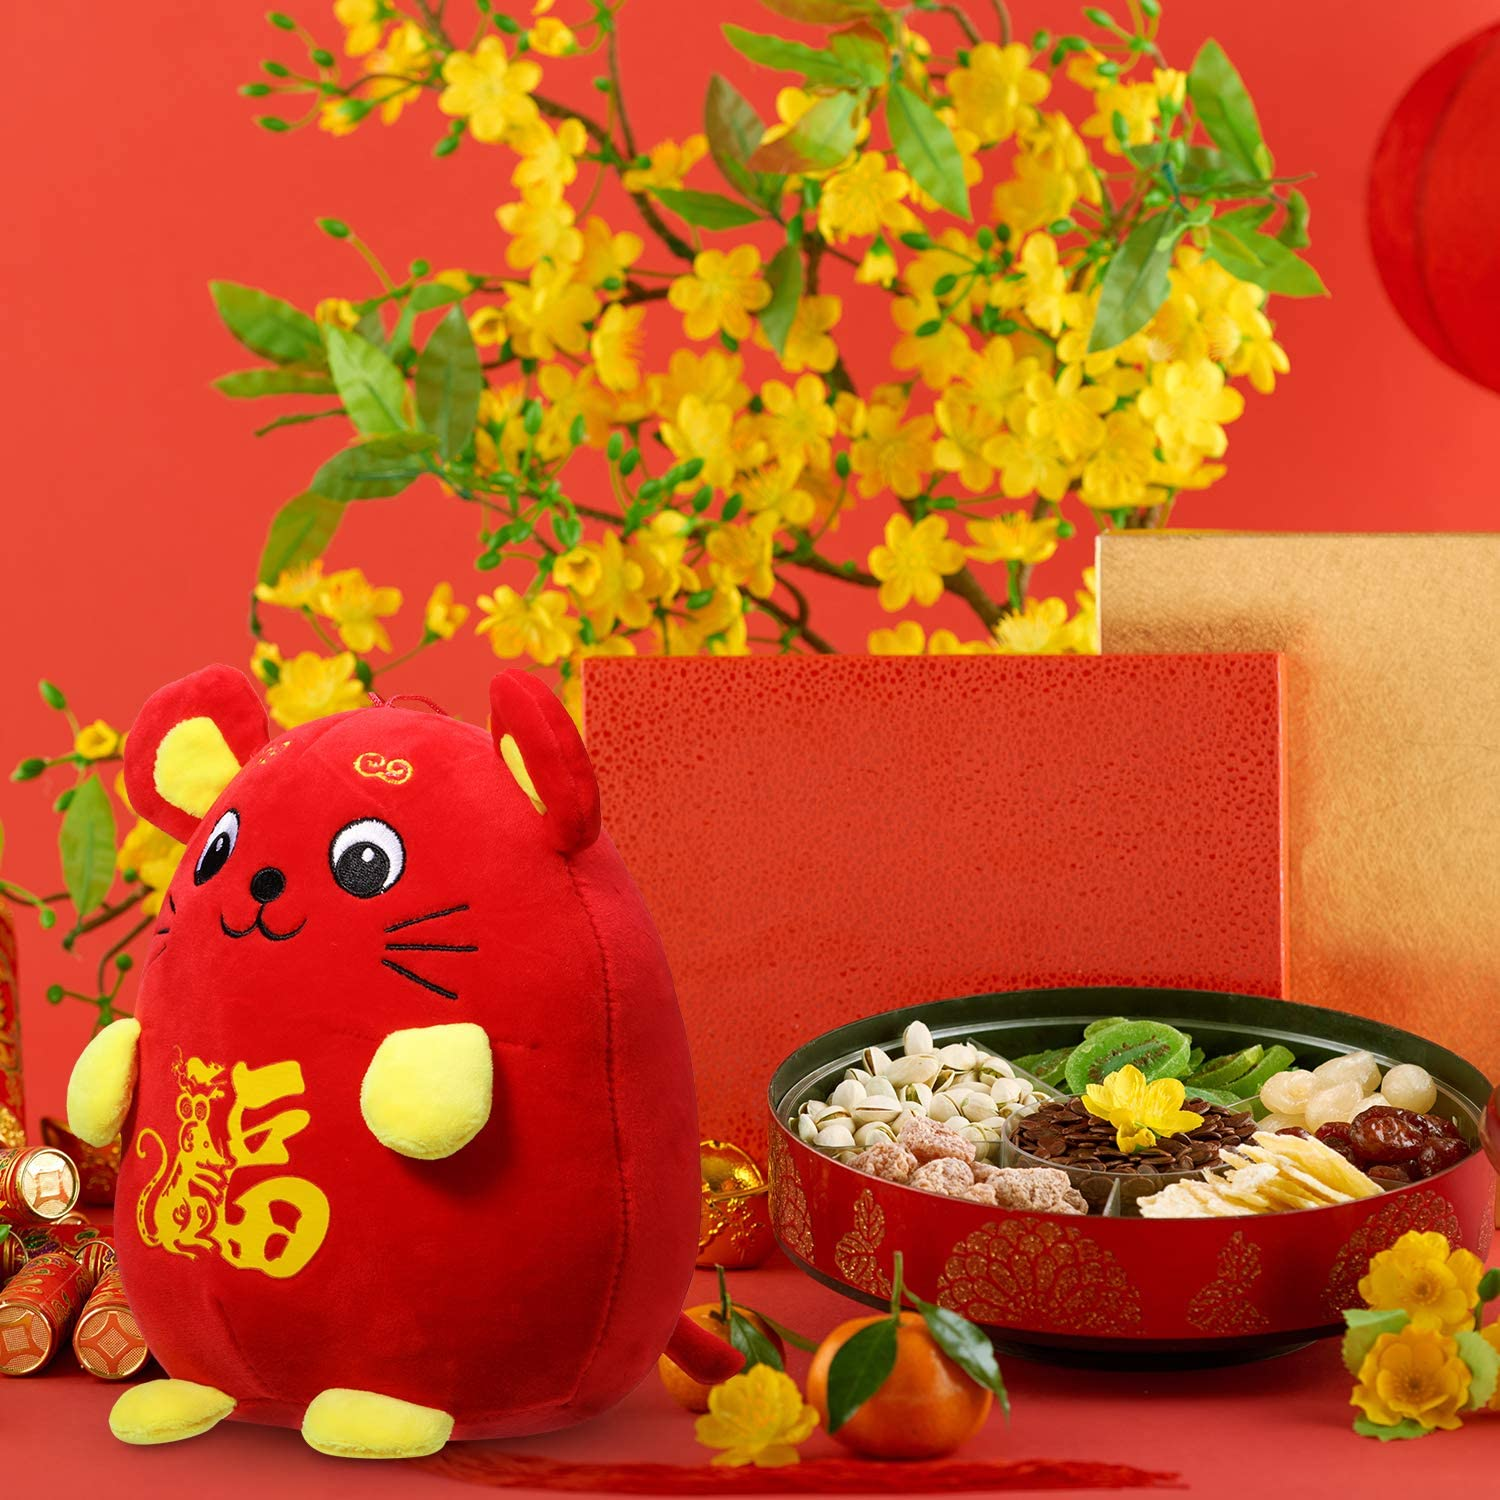 1 Pack, Rat with Word Fu Chinese New Year Red Rat Ornament Decorations Year of The Mouse Festival Decoration Good Luck Plush Red Mascot Mouse Stuffed Animal Table Shelf Decor Home Figurines